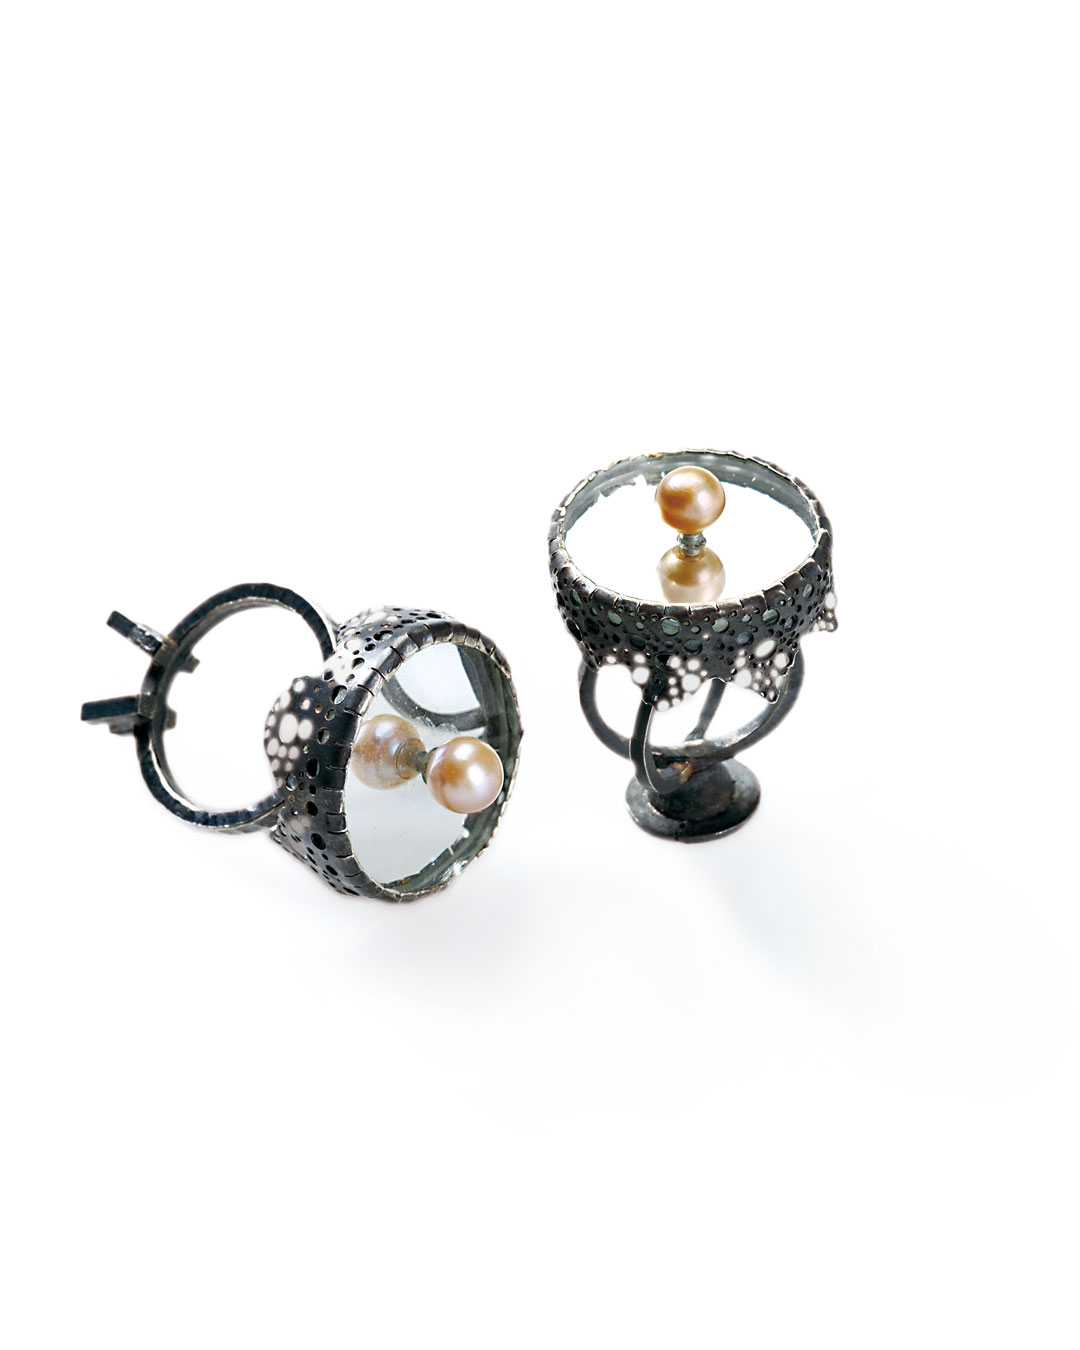 Ulrich Reithofer, Tea Table I-IV, 2009, ring; silver, freshwater pearl, oxide, mirror glass, 43 x 28 x 28 mm, €570 each